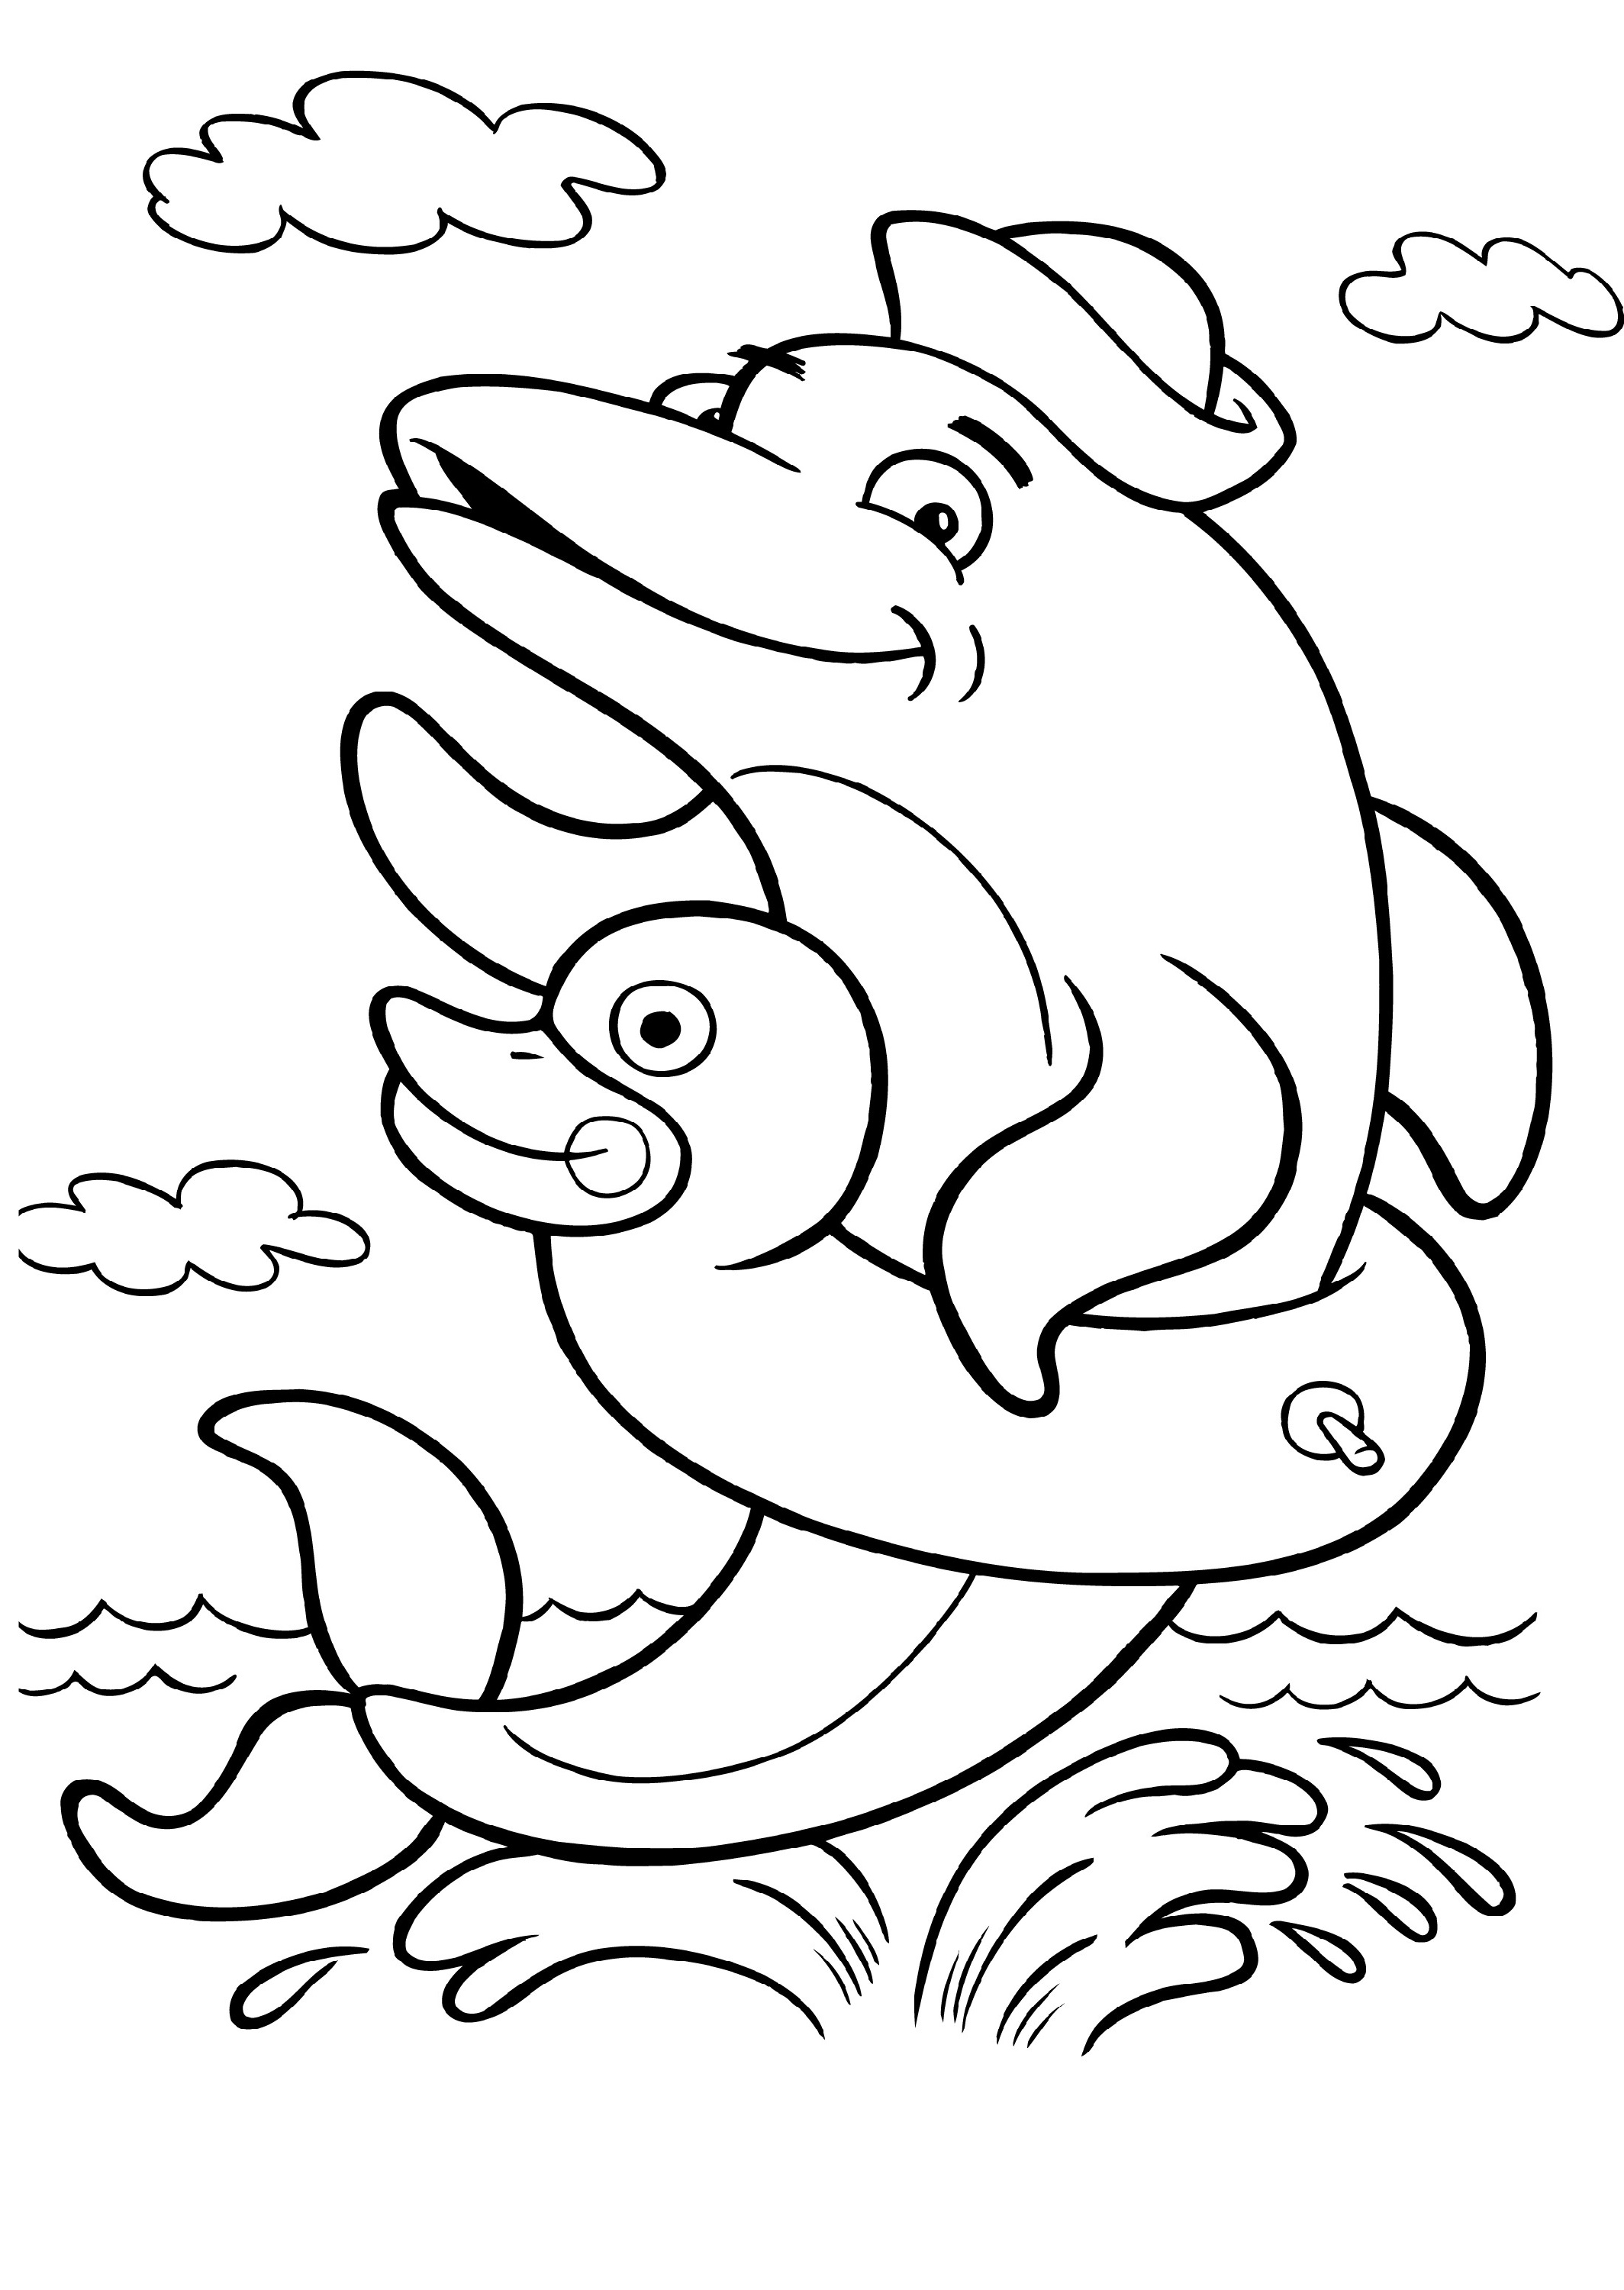 Dolphin Coloring Pages Animals K5 Worksheets